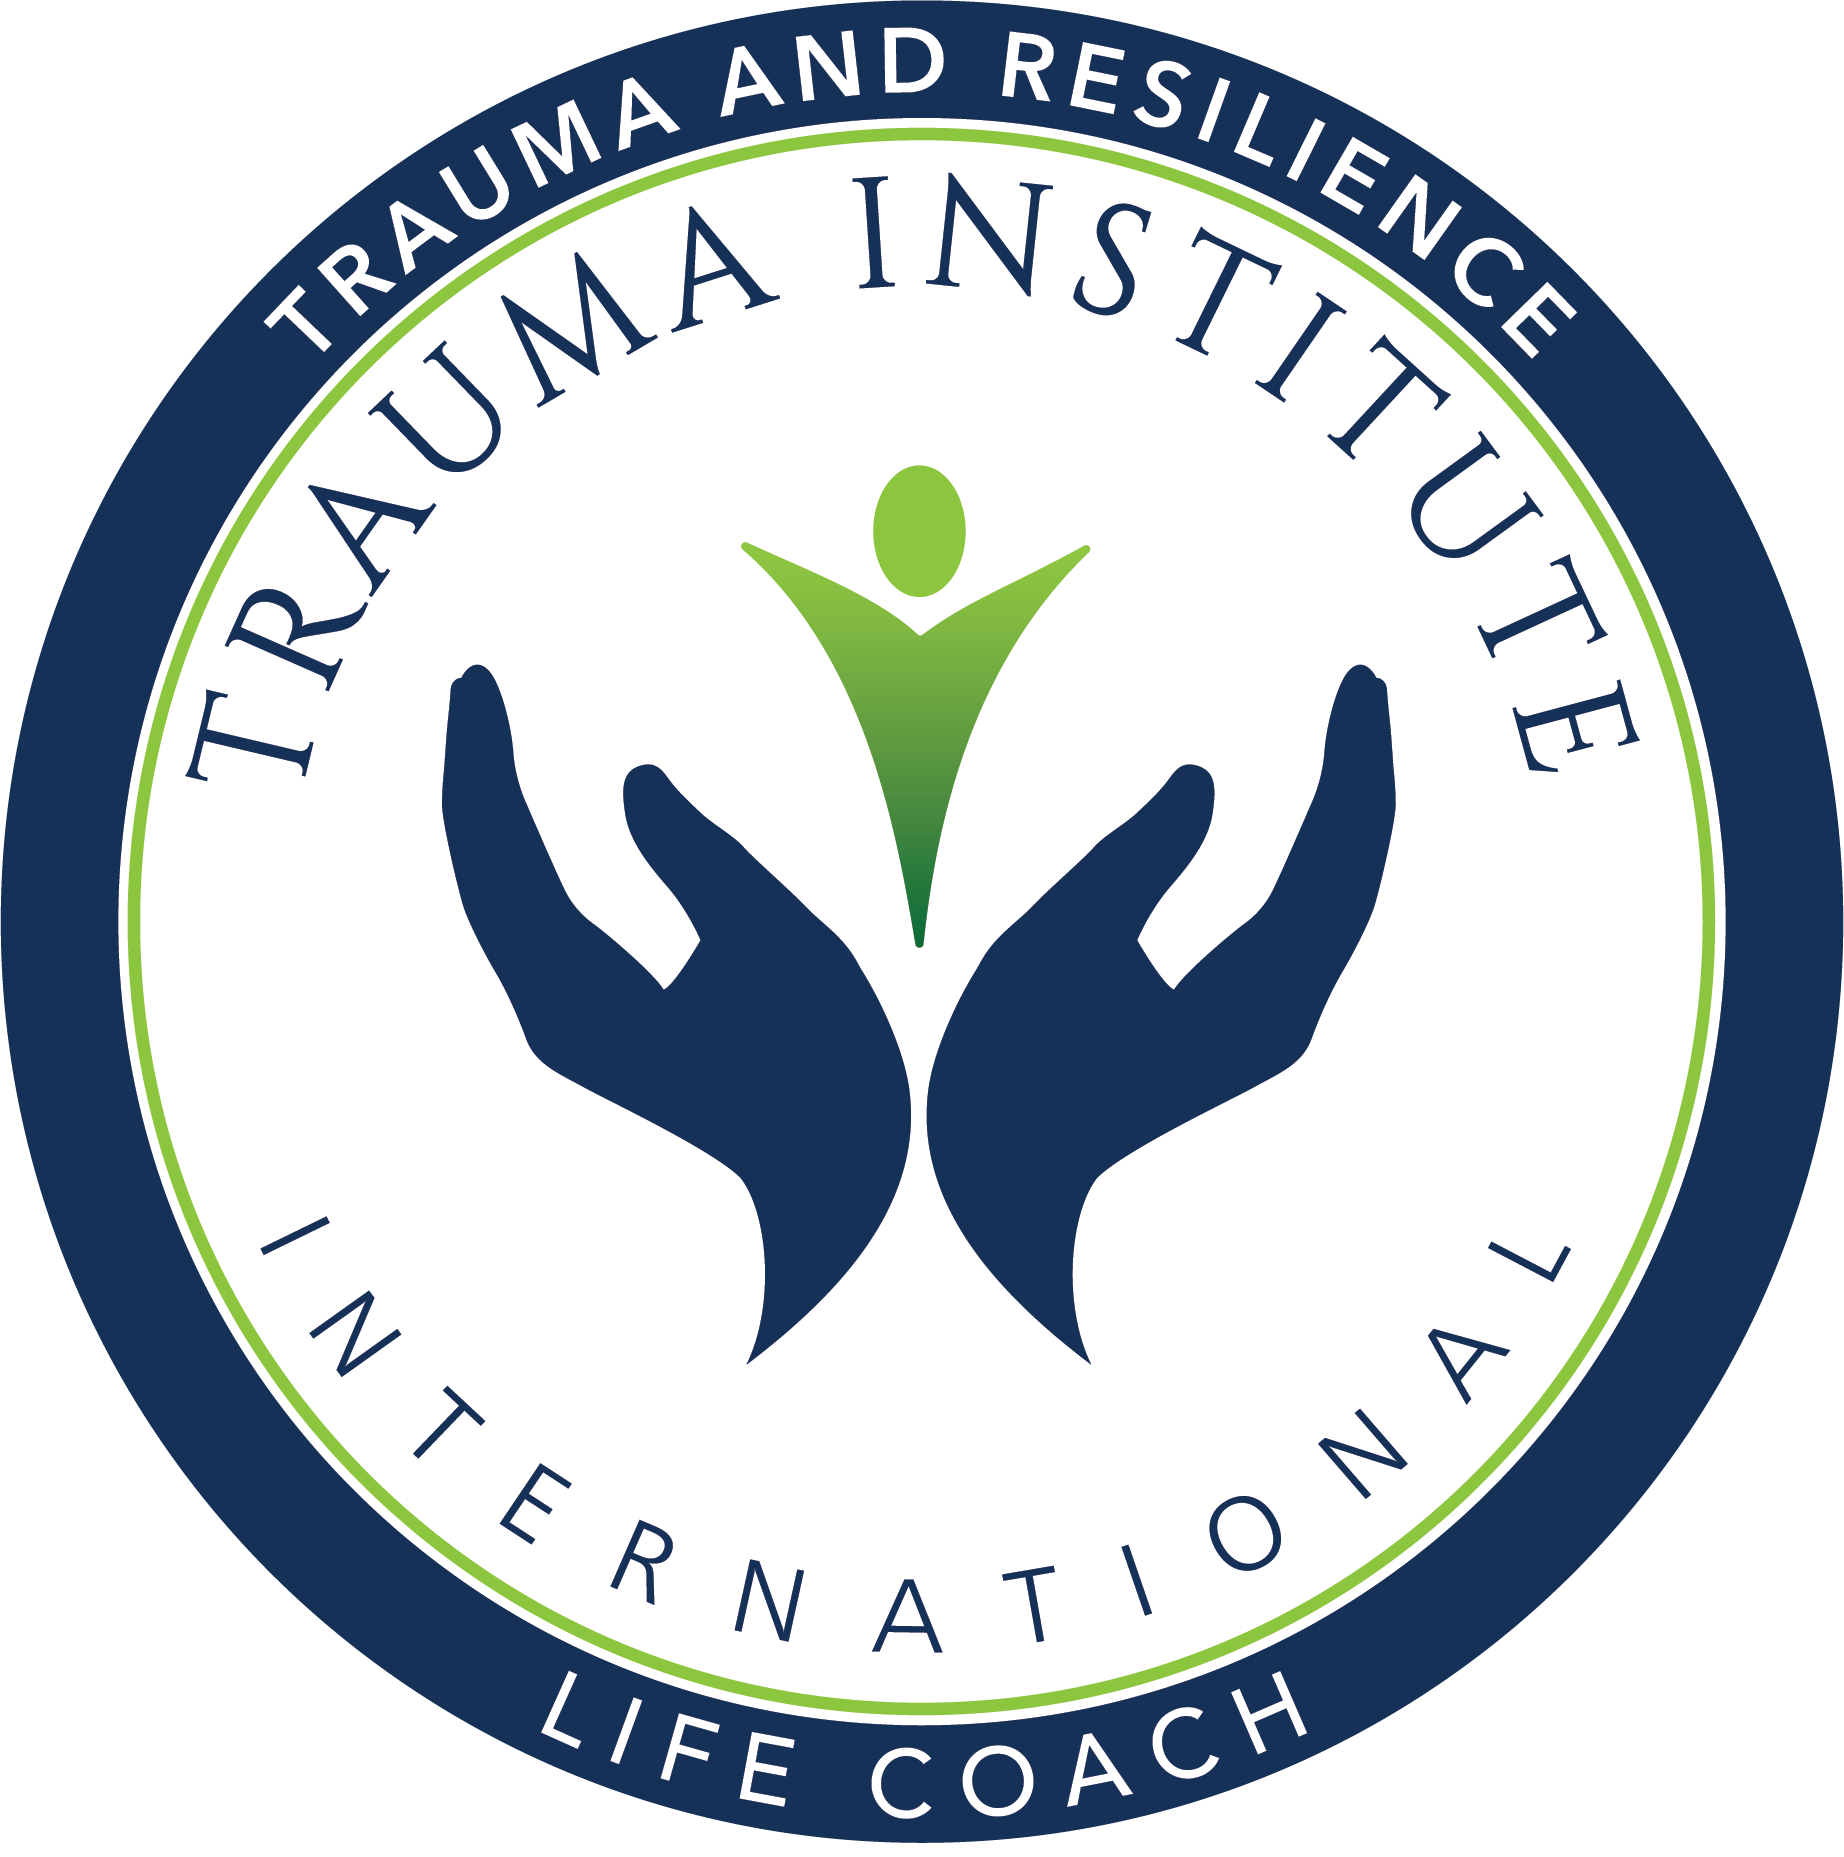 Trauma Resilience-LifeCoach Badge